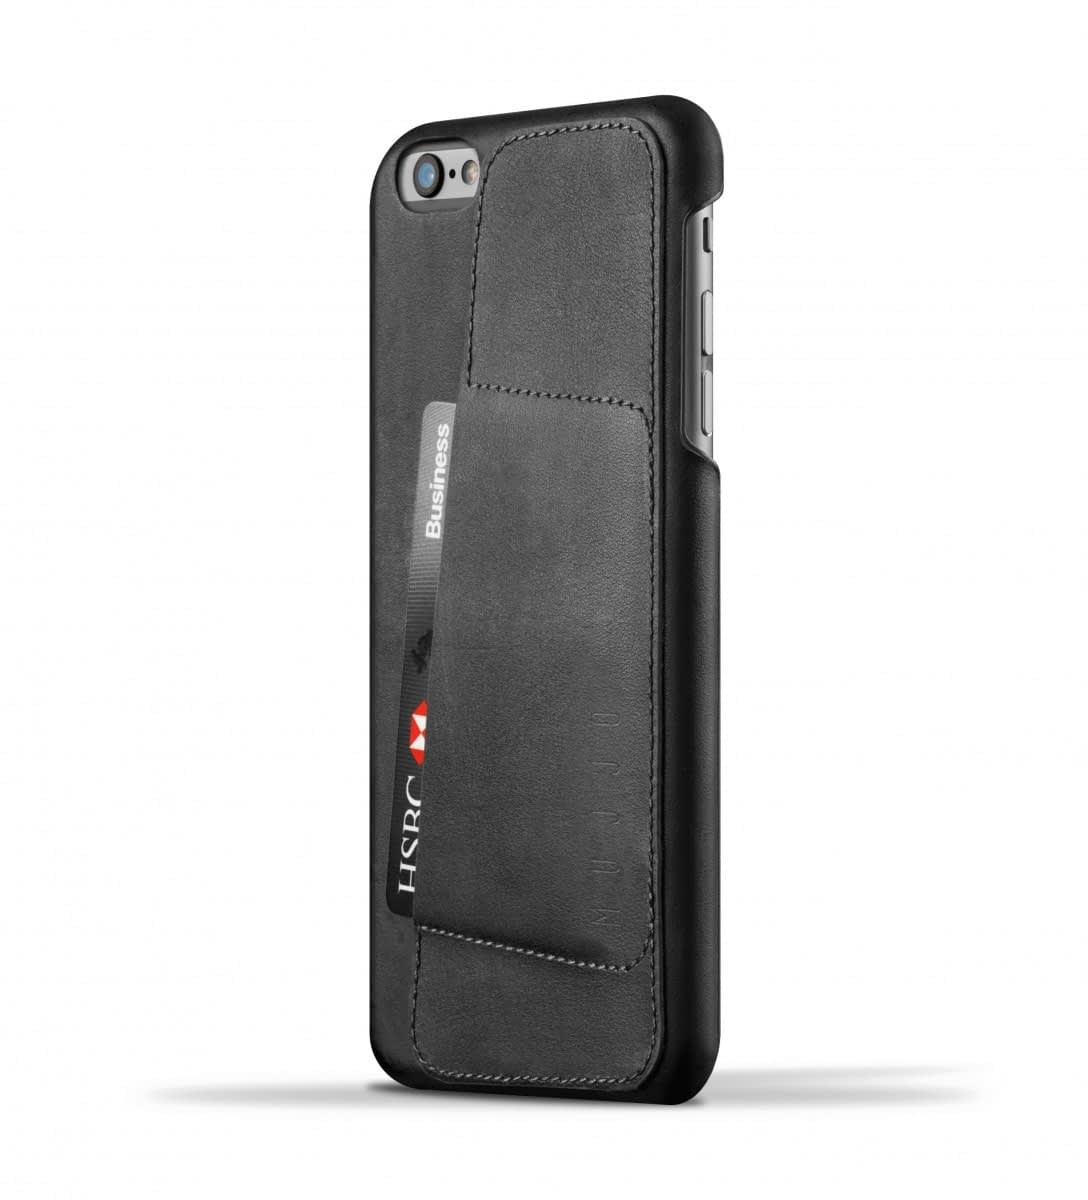 leather wallet case 80 for iPhone 6s plus black 1088x1200